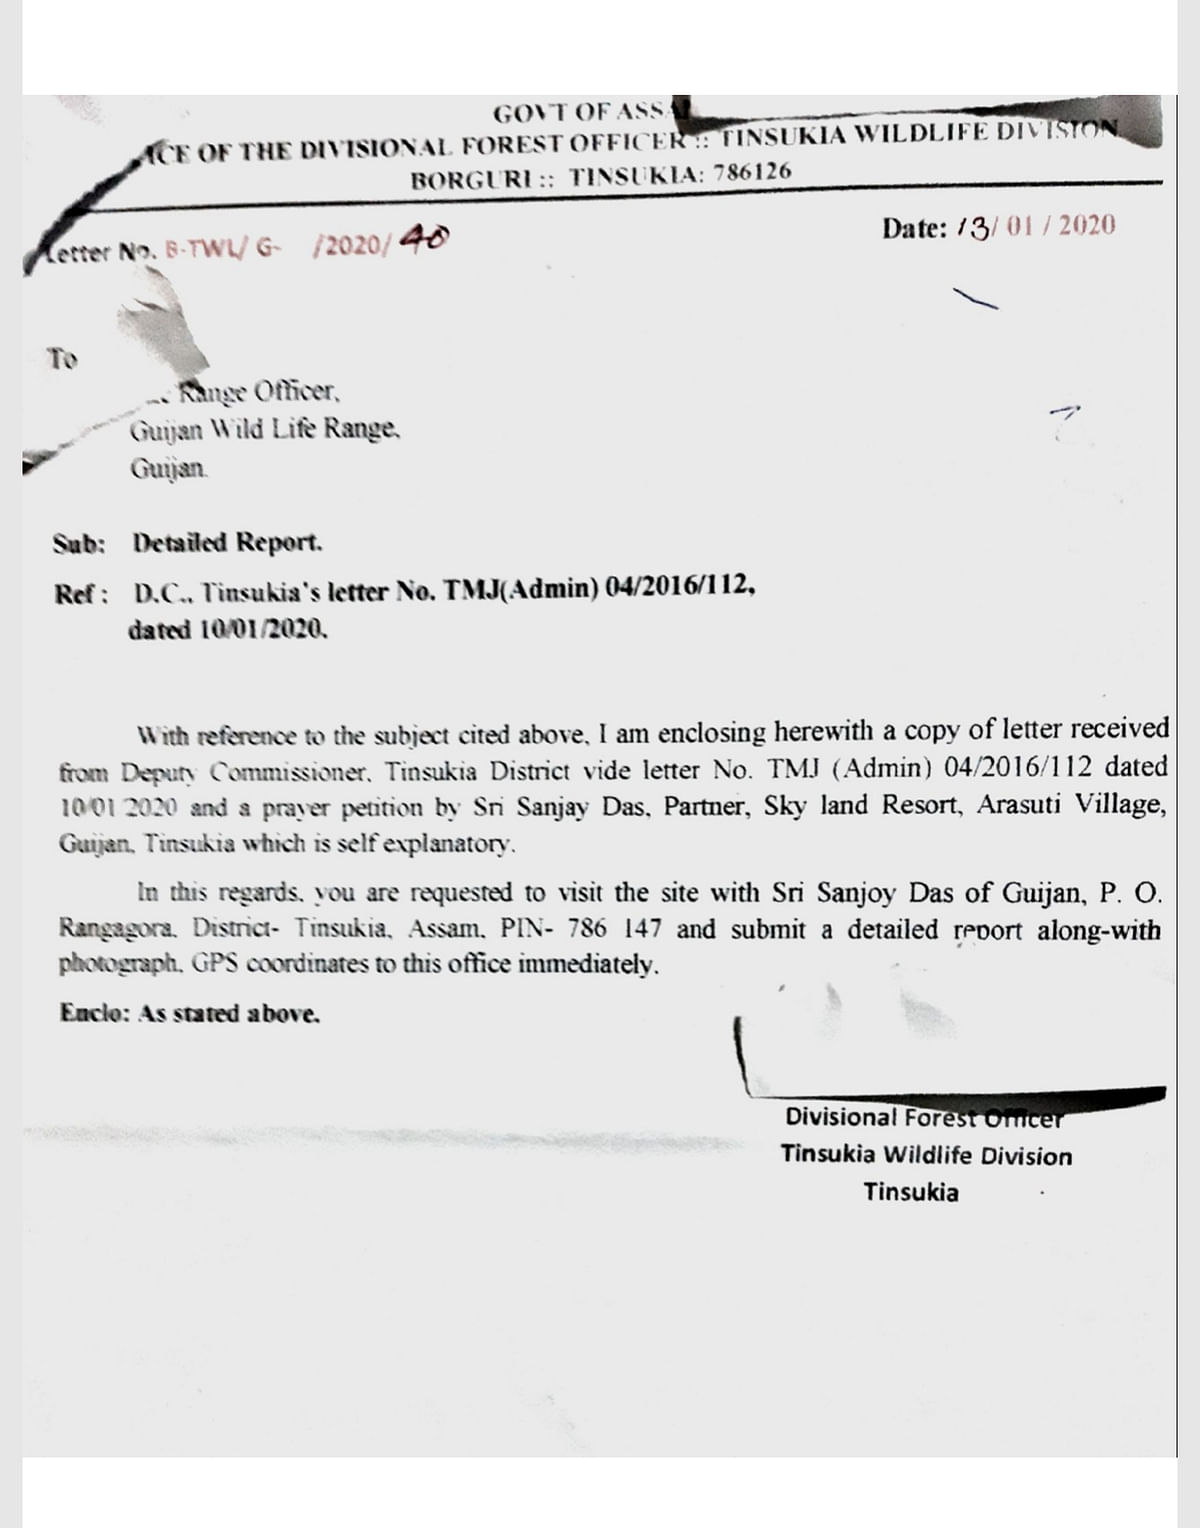 Copy of the letter issued by DFO of Tinsukia Wildlife Division